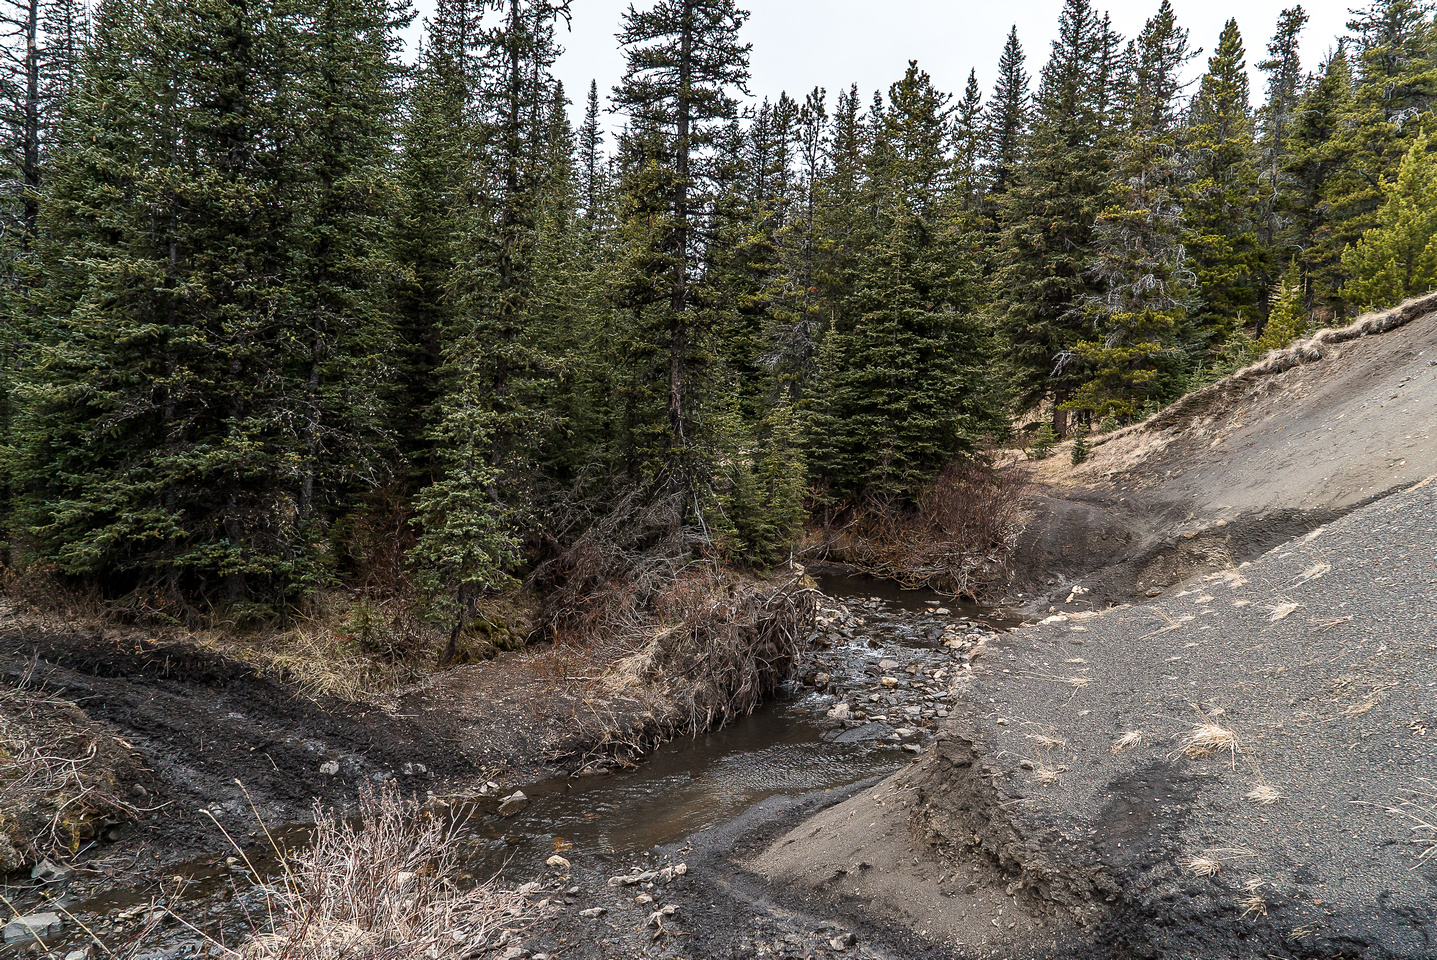 This section of Isolation Creek is along a washed out section of the road.